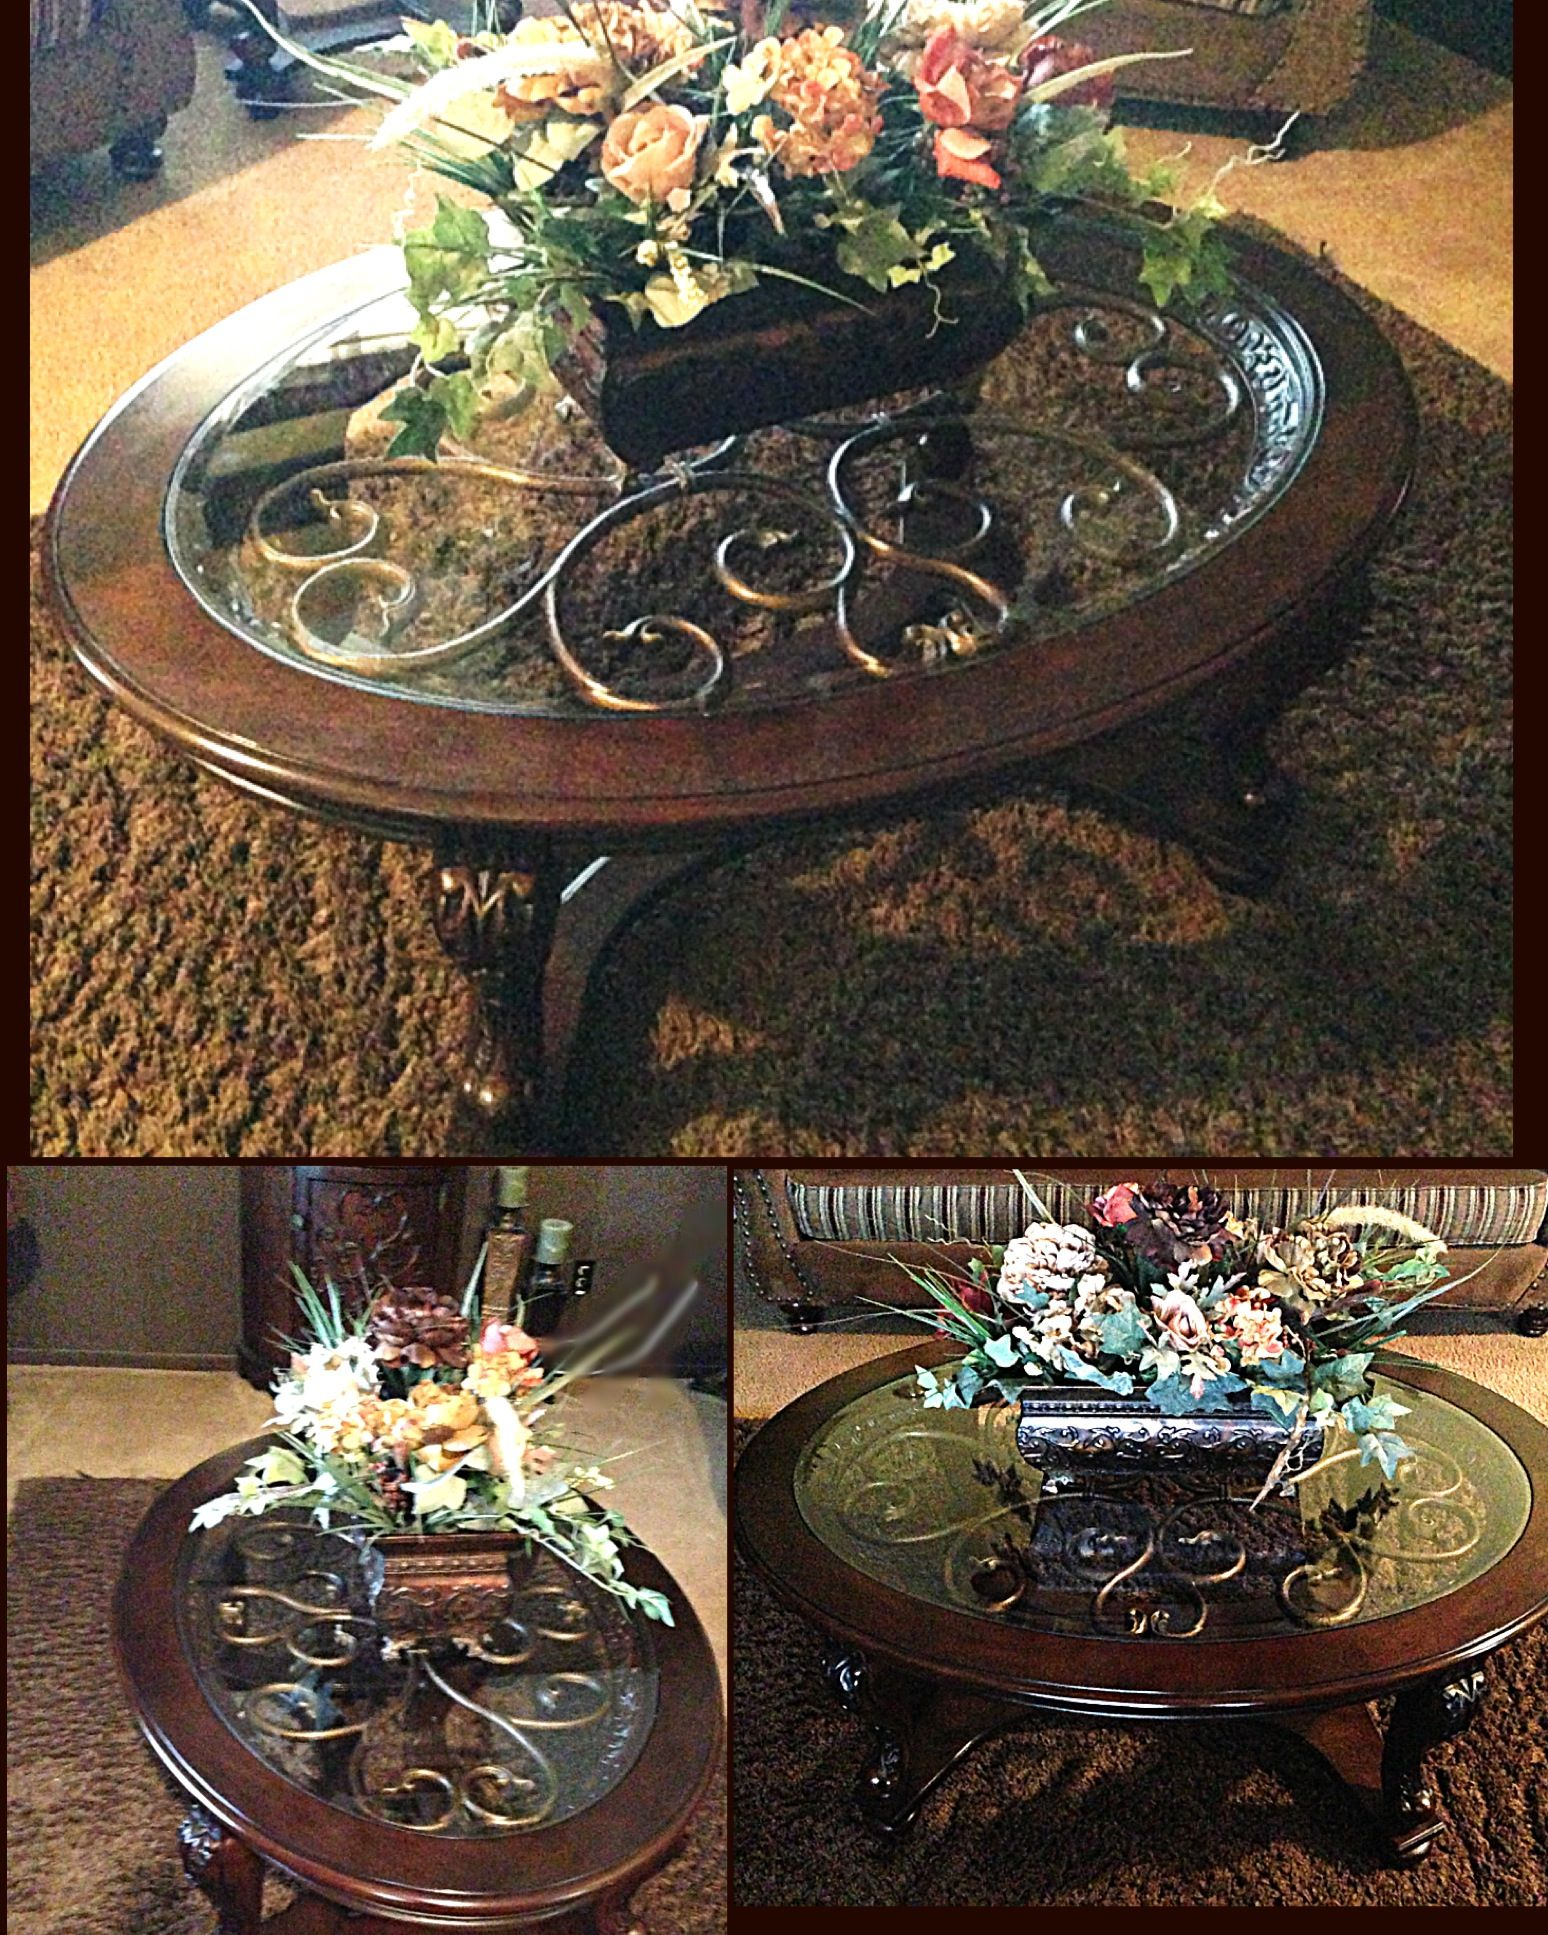 Roses Ashley Furniture : roses, ashley, furniture, Ashley, Furniture, Coffee, Table, Artificial, Flower, Arrangement, #HomeSweetHome, Decor, Living, Room,, Decorating, Tables